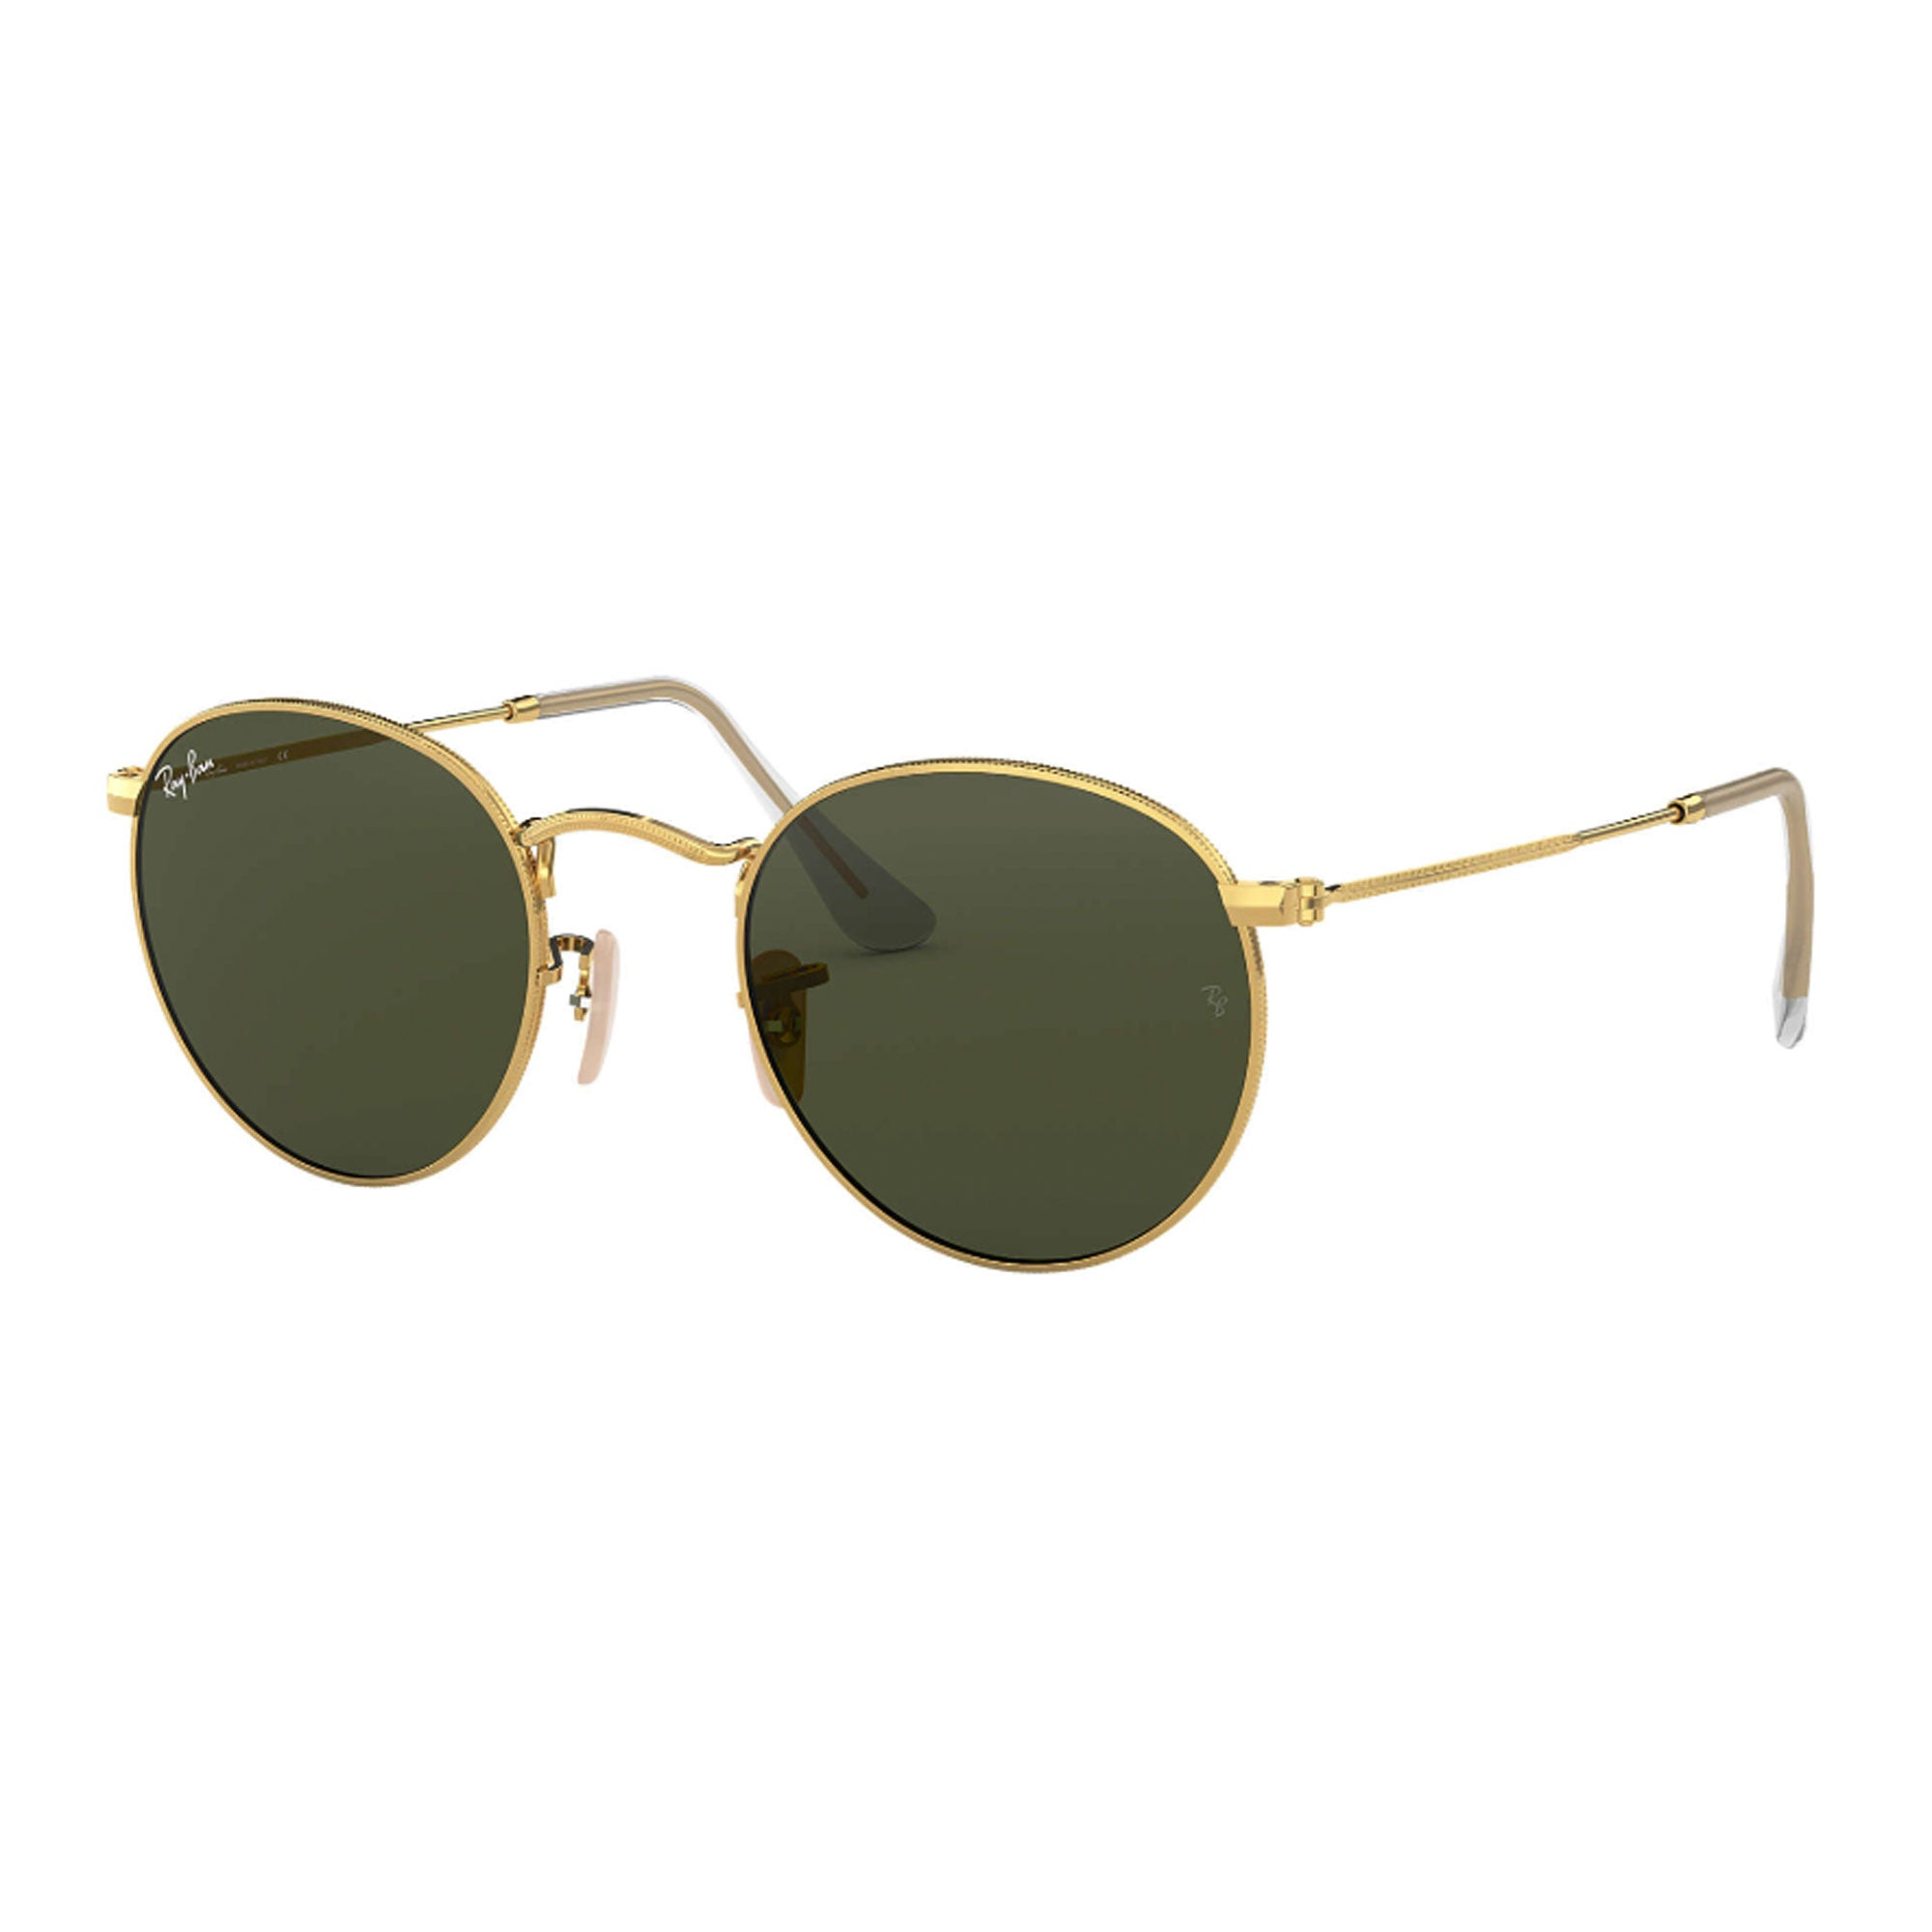 Ray-Ban Round Metal Men's Sunglasses - Gold/Crystal Green